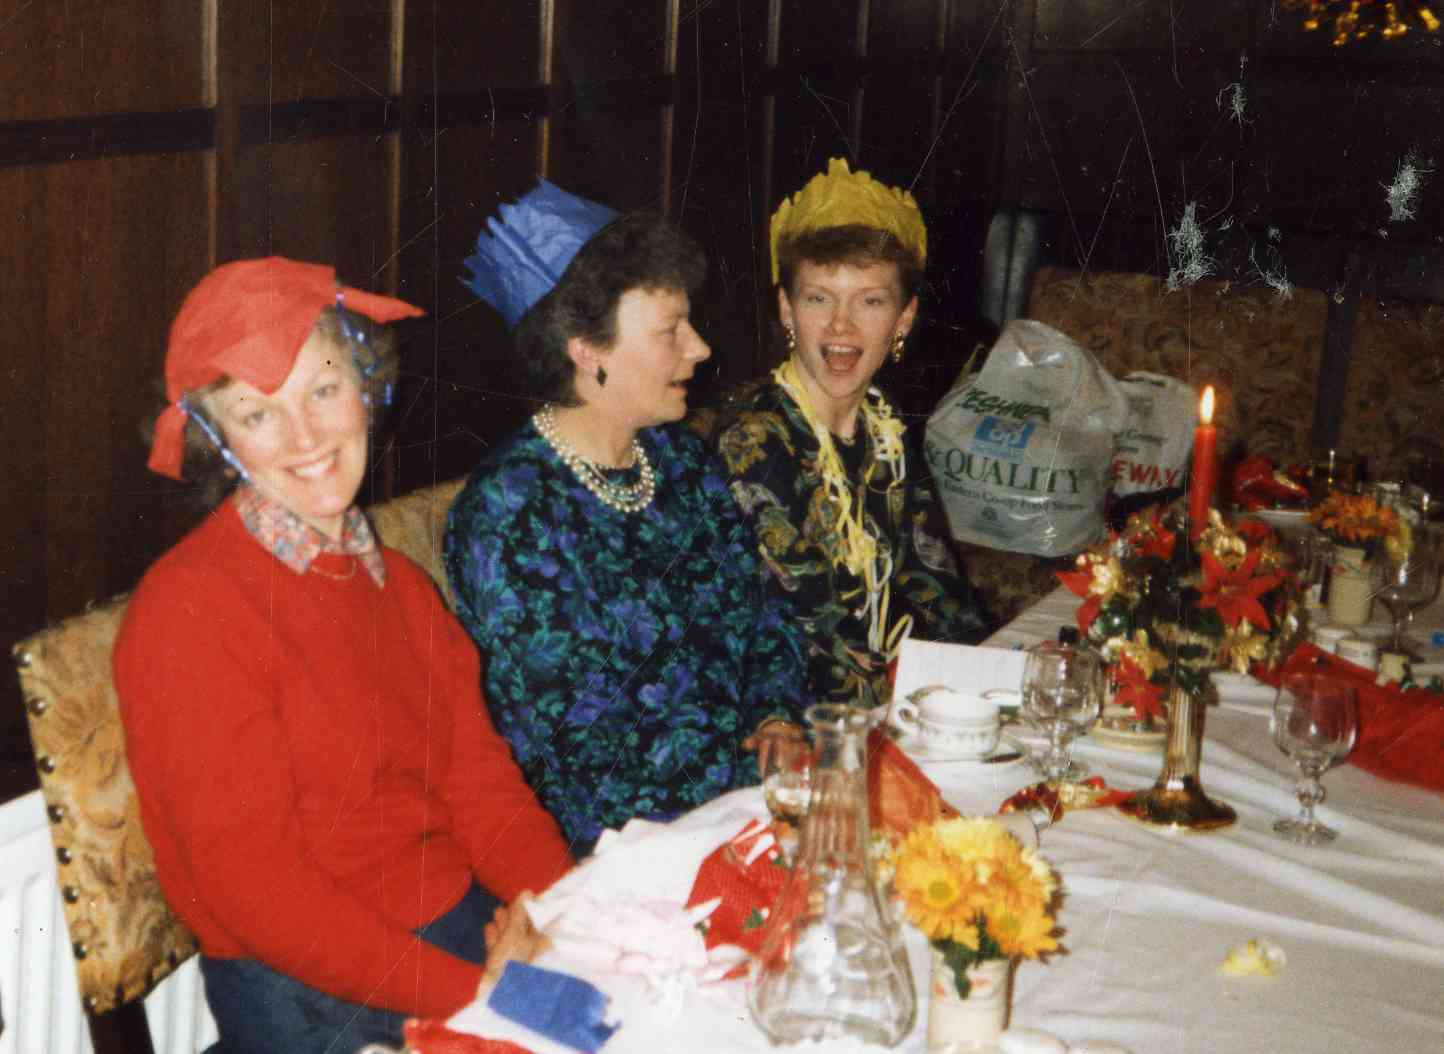 WI-Chritsmas meal with hats.jpg